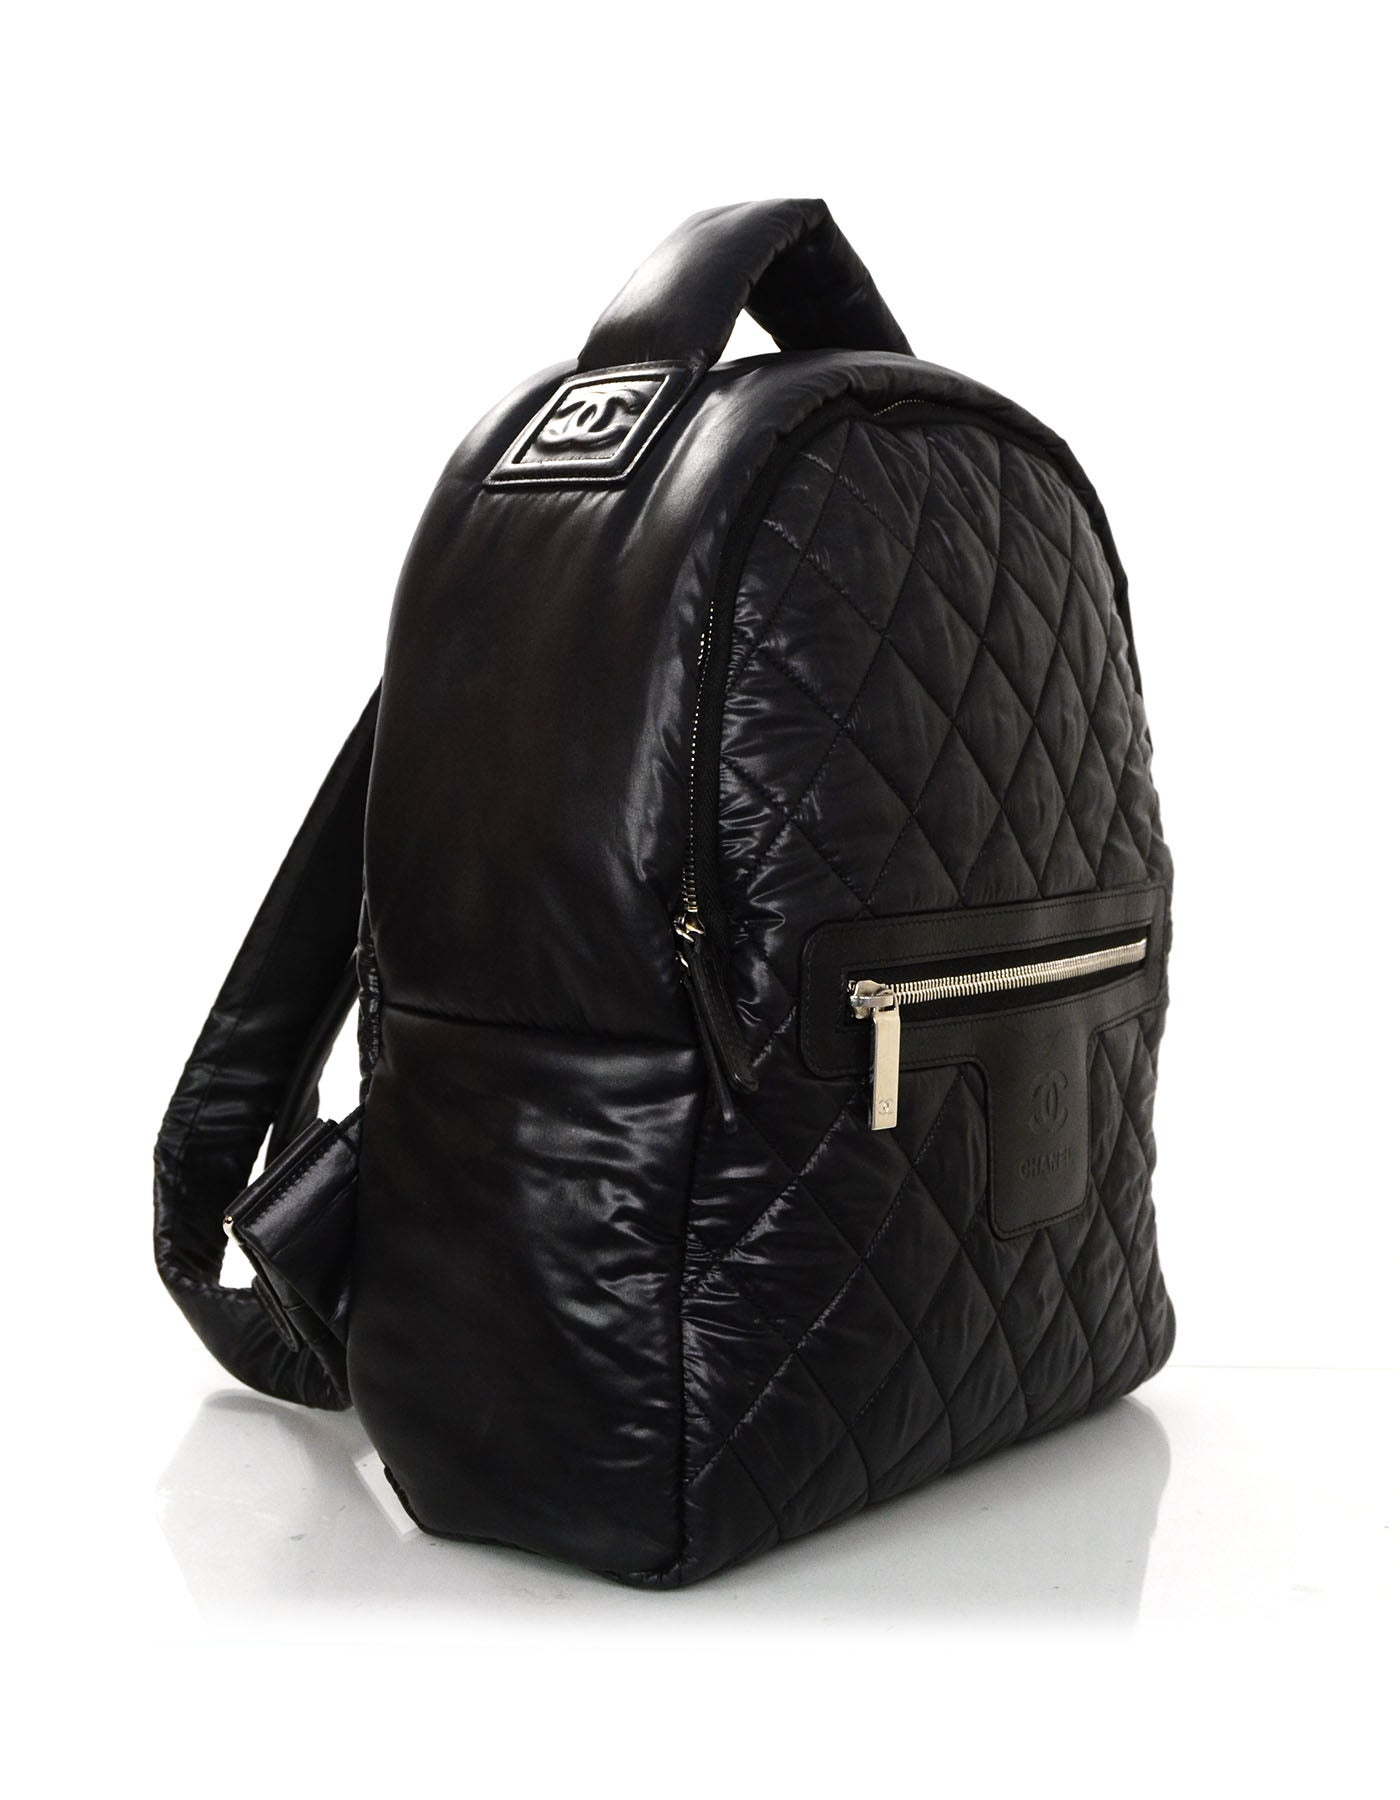 98fe0b0c1523e3 Chanel 2016 Black Nylon Coco Cocoon Backpack Bag For Sale at 1stdibs